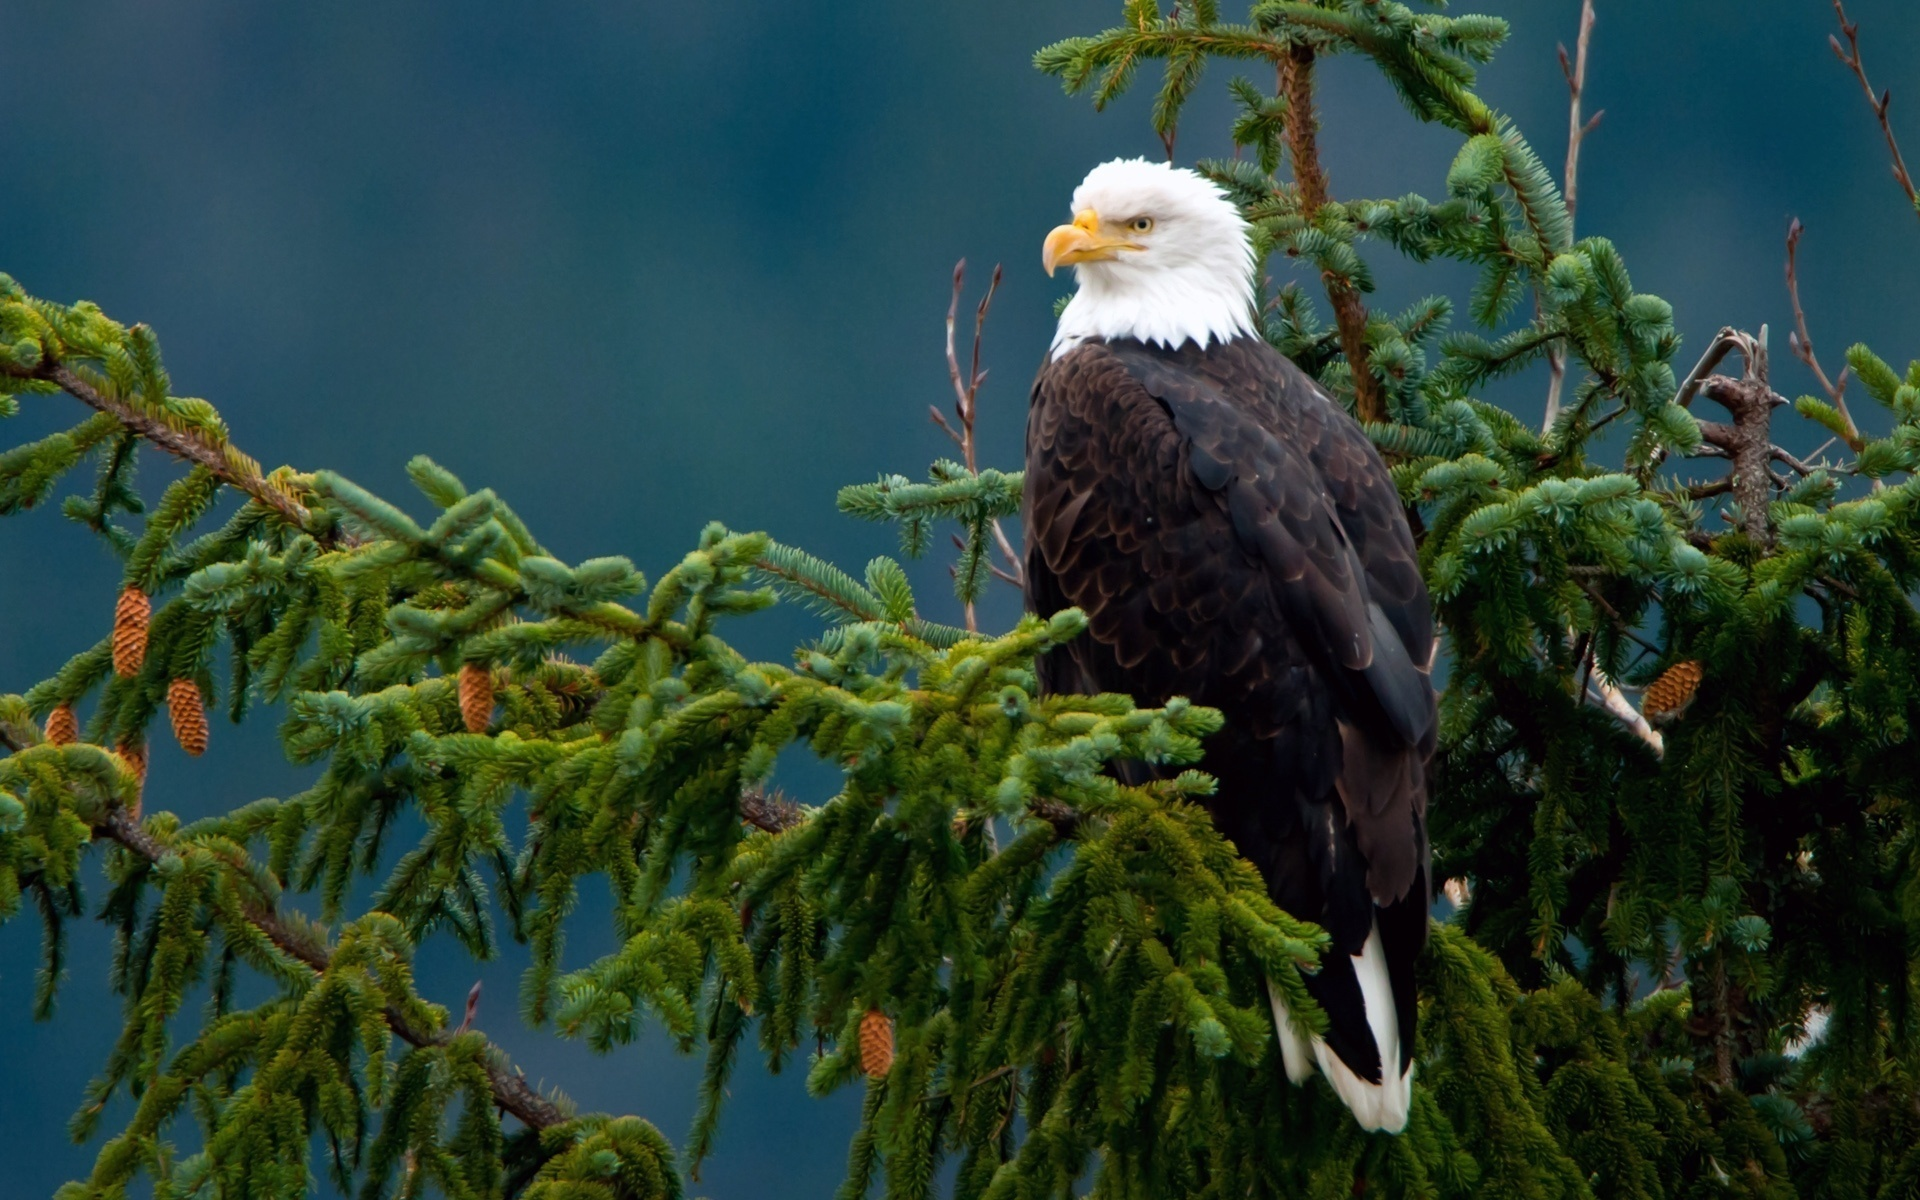 28929 download wallpaper Animals, Birds, Eagles screensavers and pictures for free